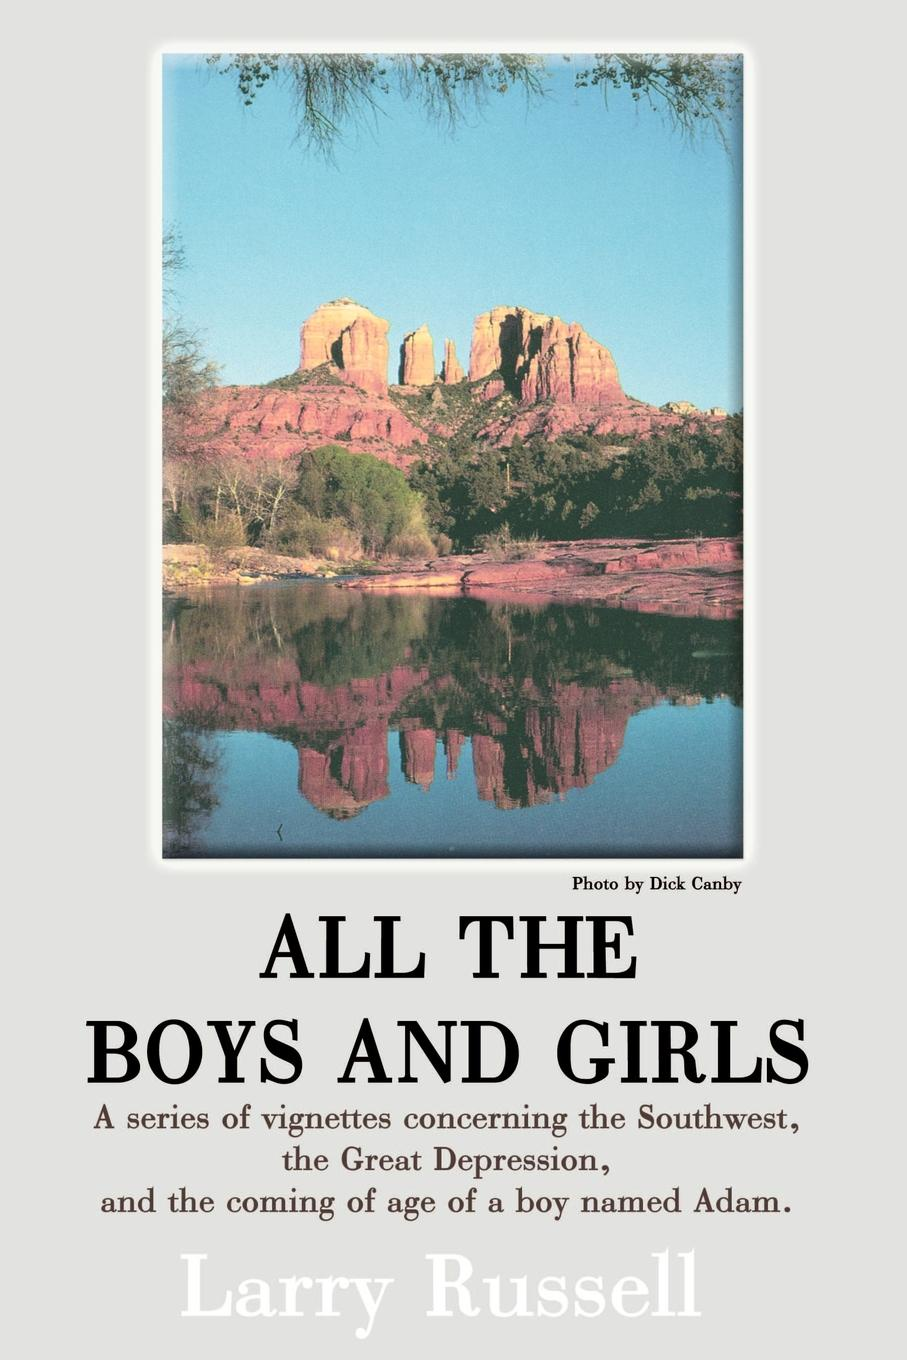 All the Boys and Girls. A Series of Vignettes Concerning the Southwest, the Great Depression, and the Coming of Age of a Boy Names Adam